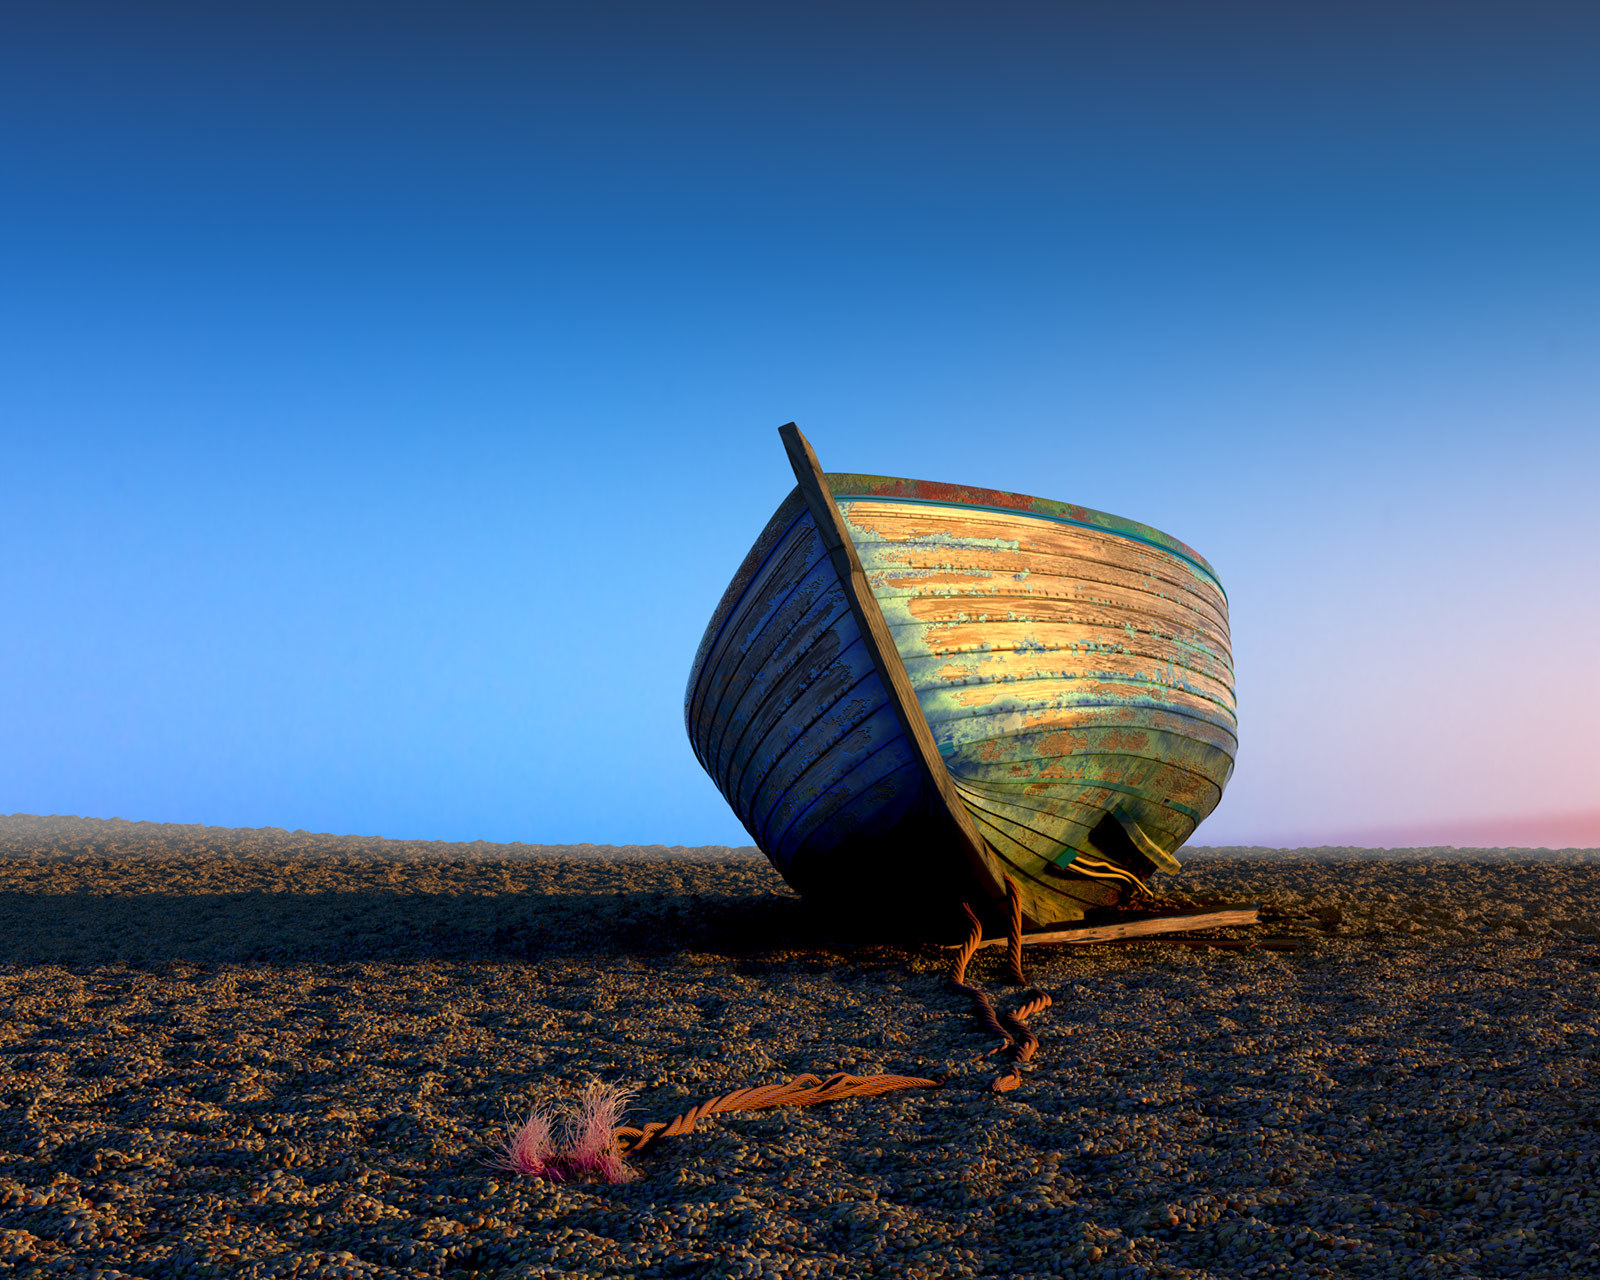 Boat on the beach by John Bavaresco